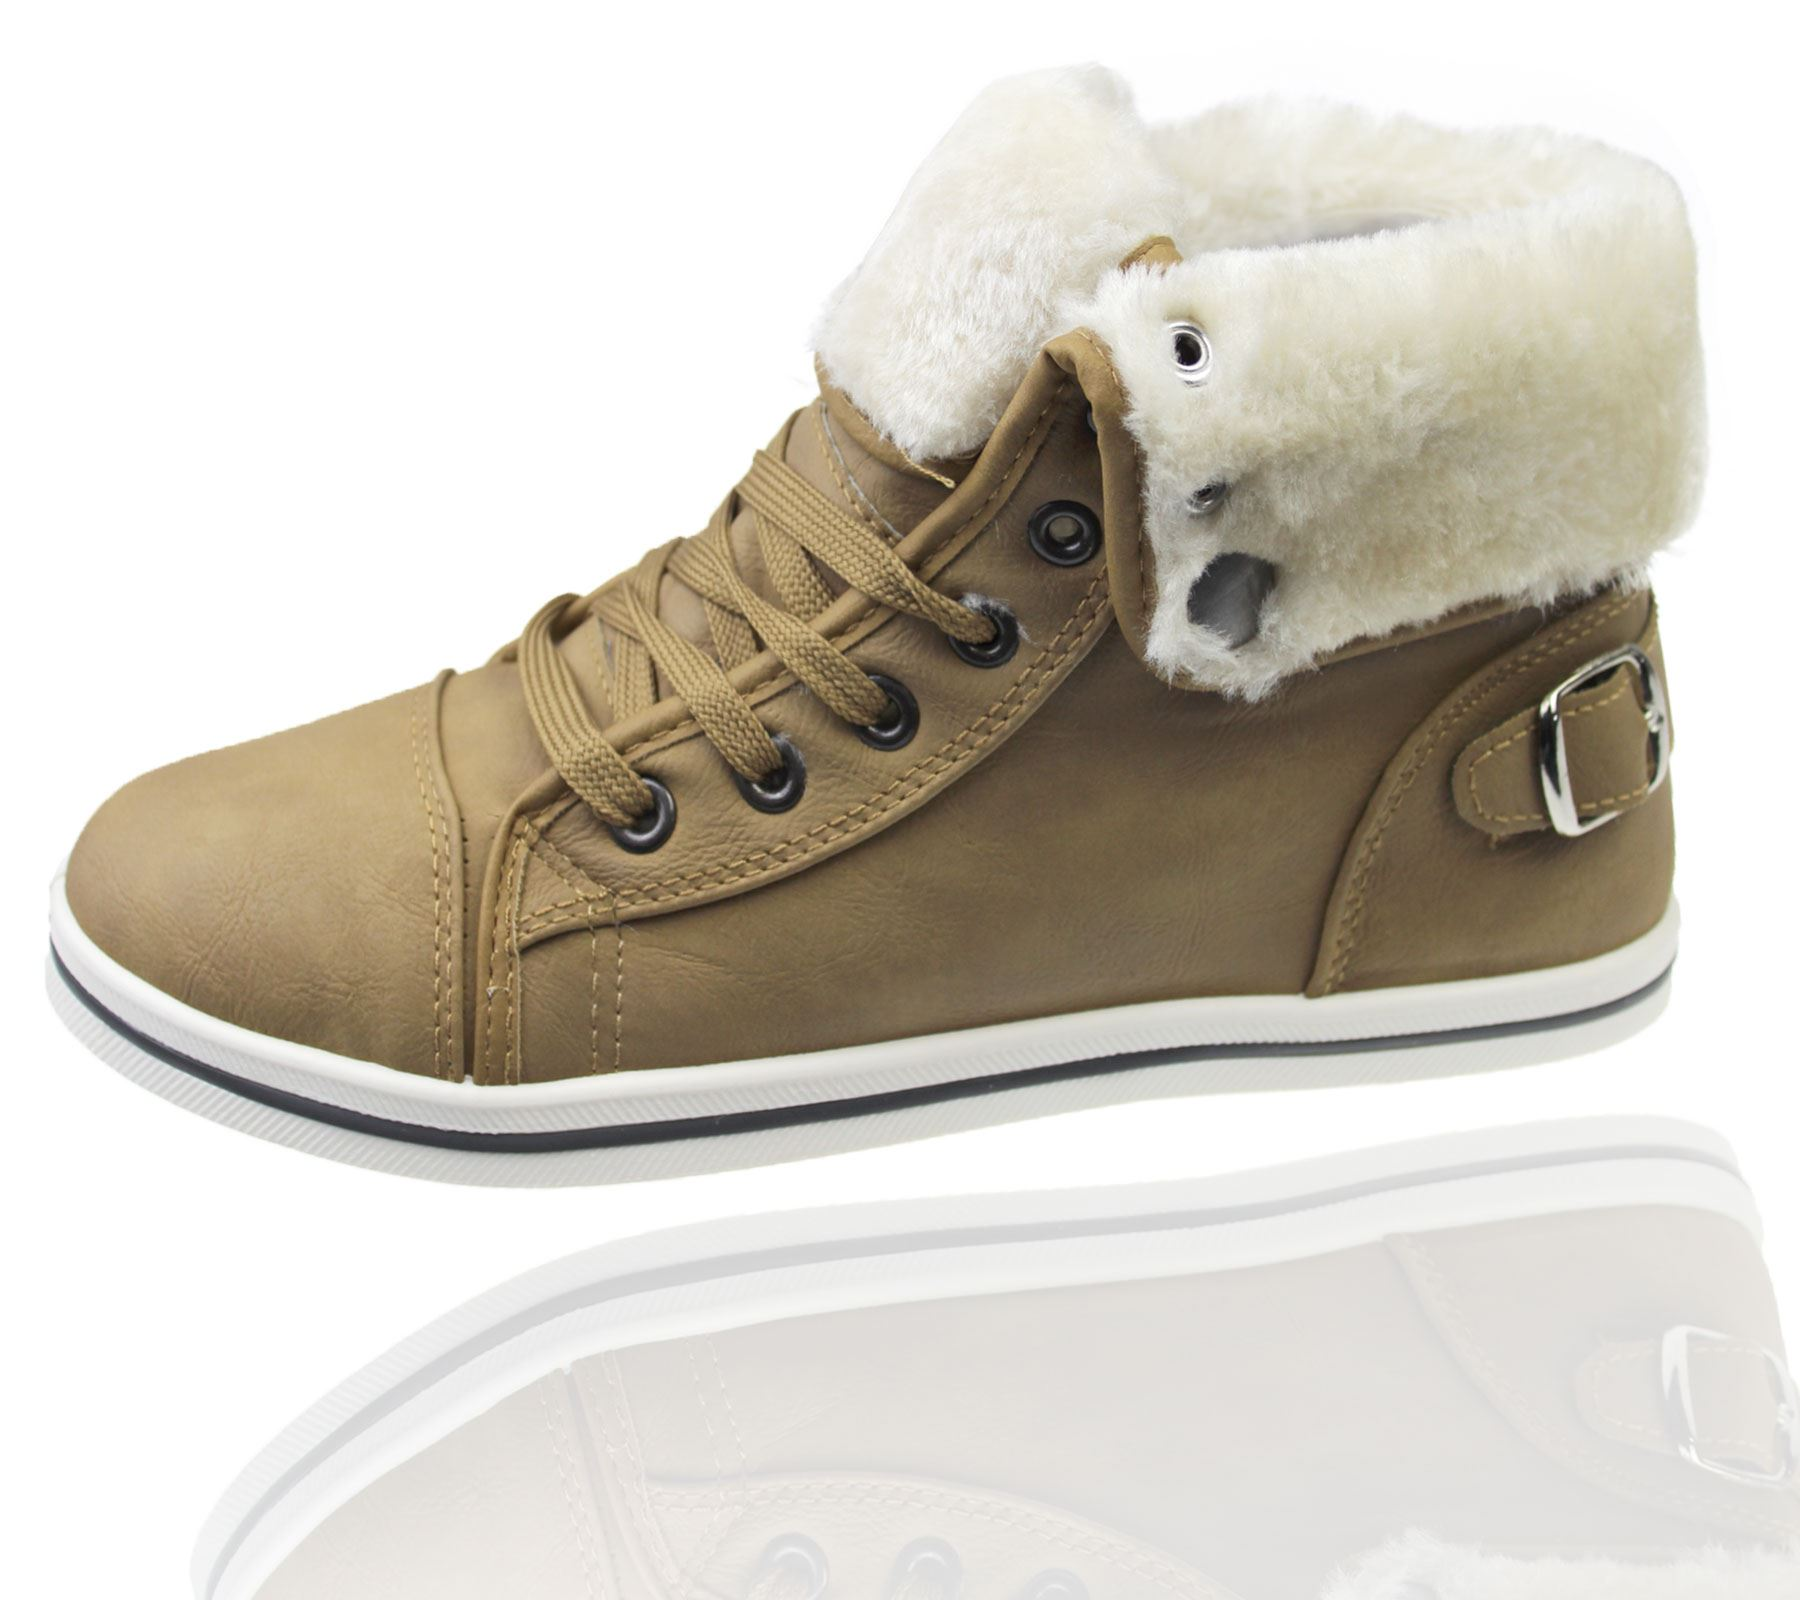 Girls-Boots-Womens-Warm-Lined-High-Top-Ankle-Trainer-Ladies-Winter-Shoes-Size miniatura 109